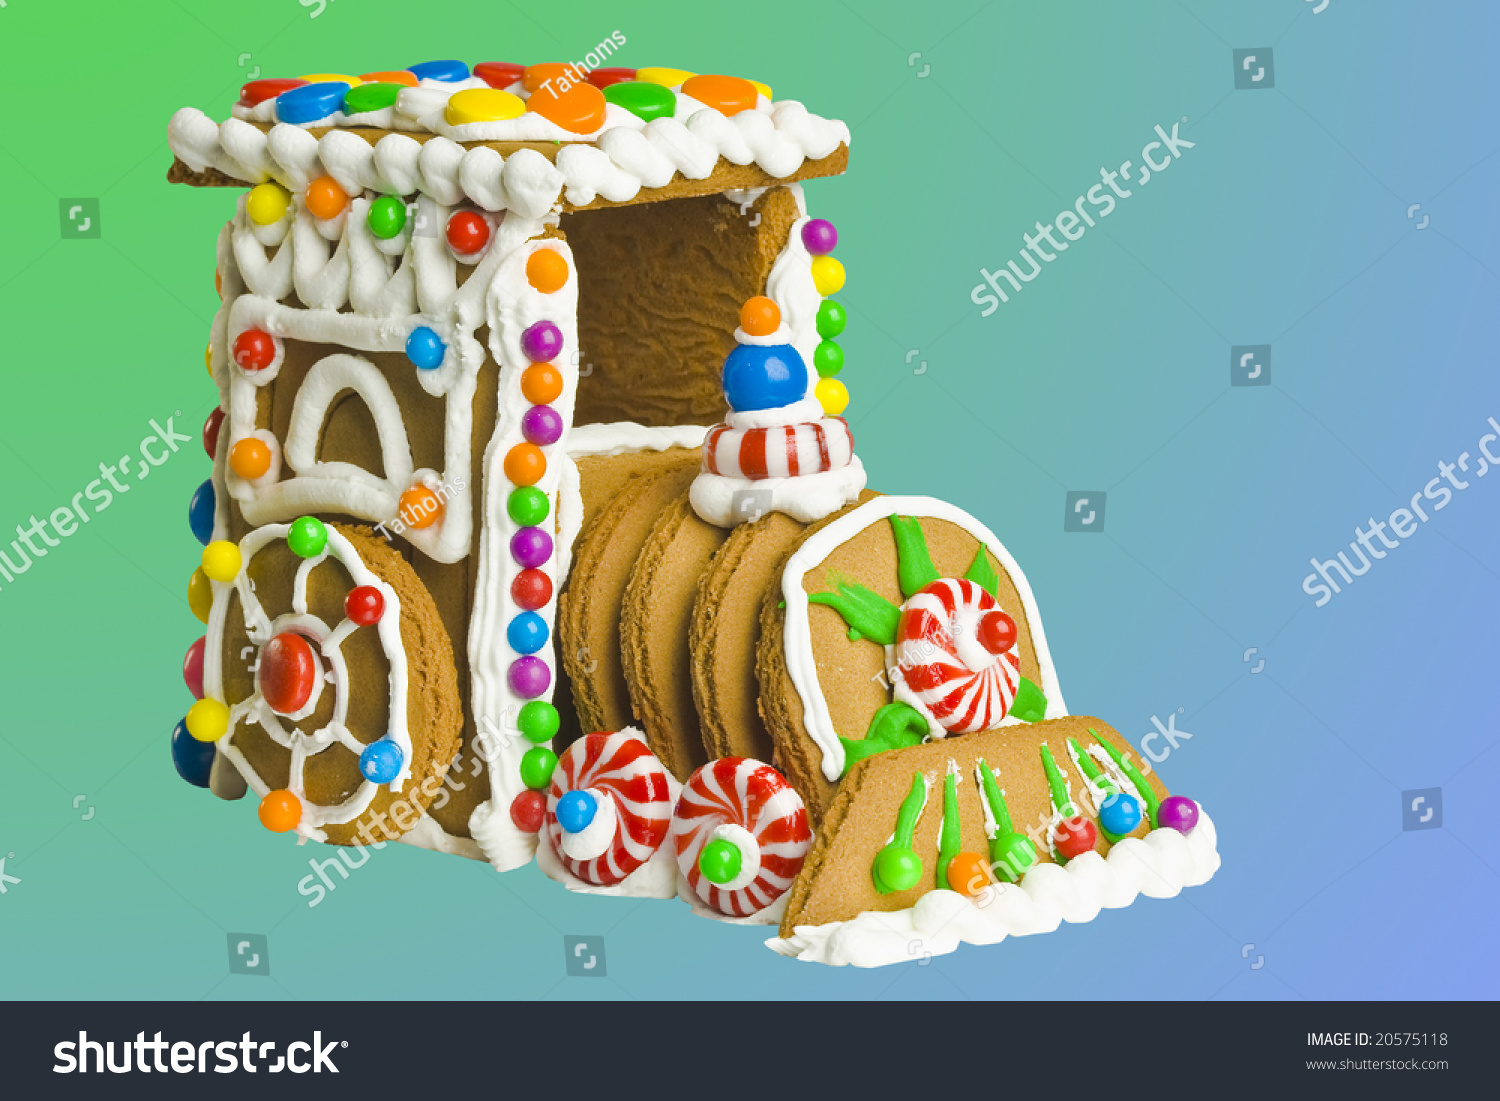 Gingerbread locomotive cake, clipping path